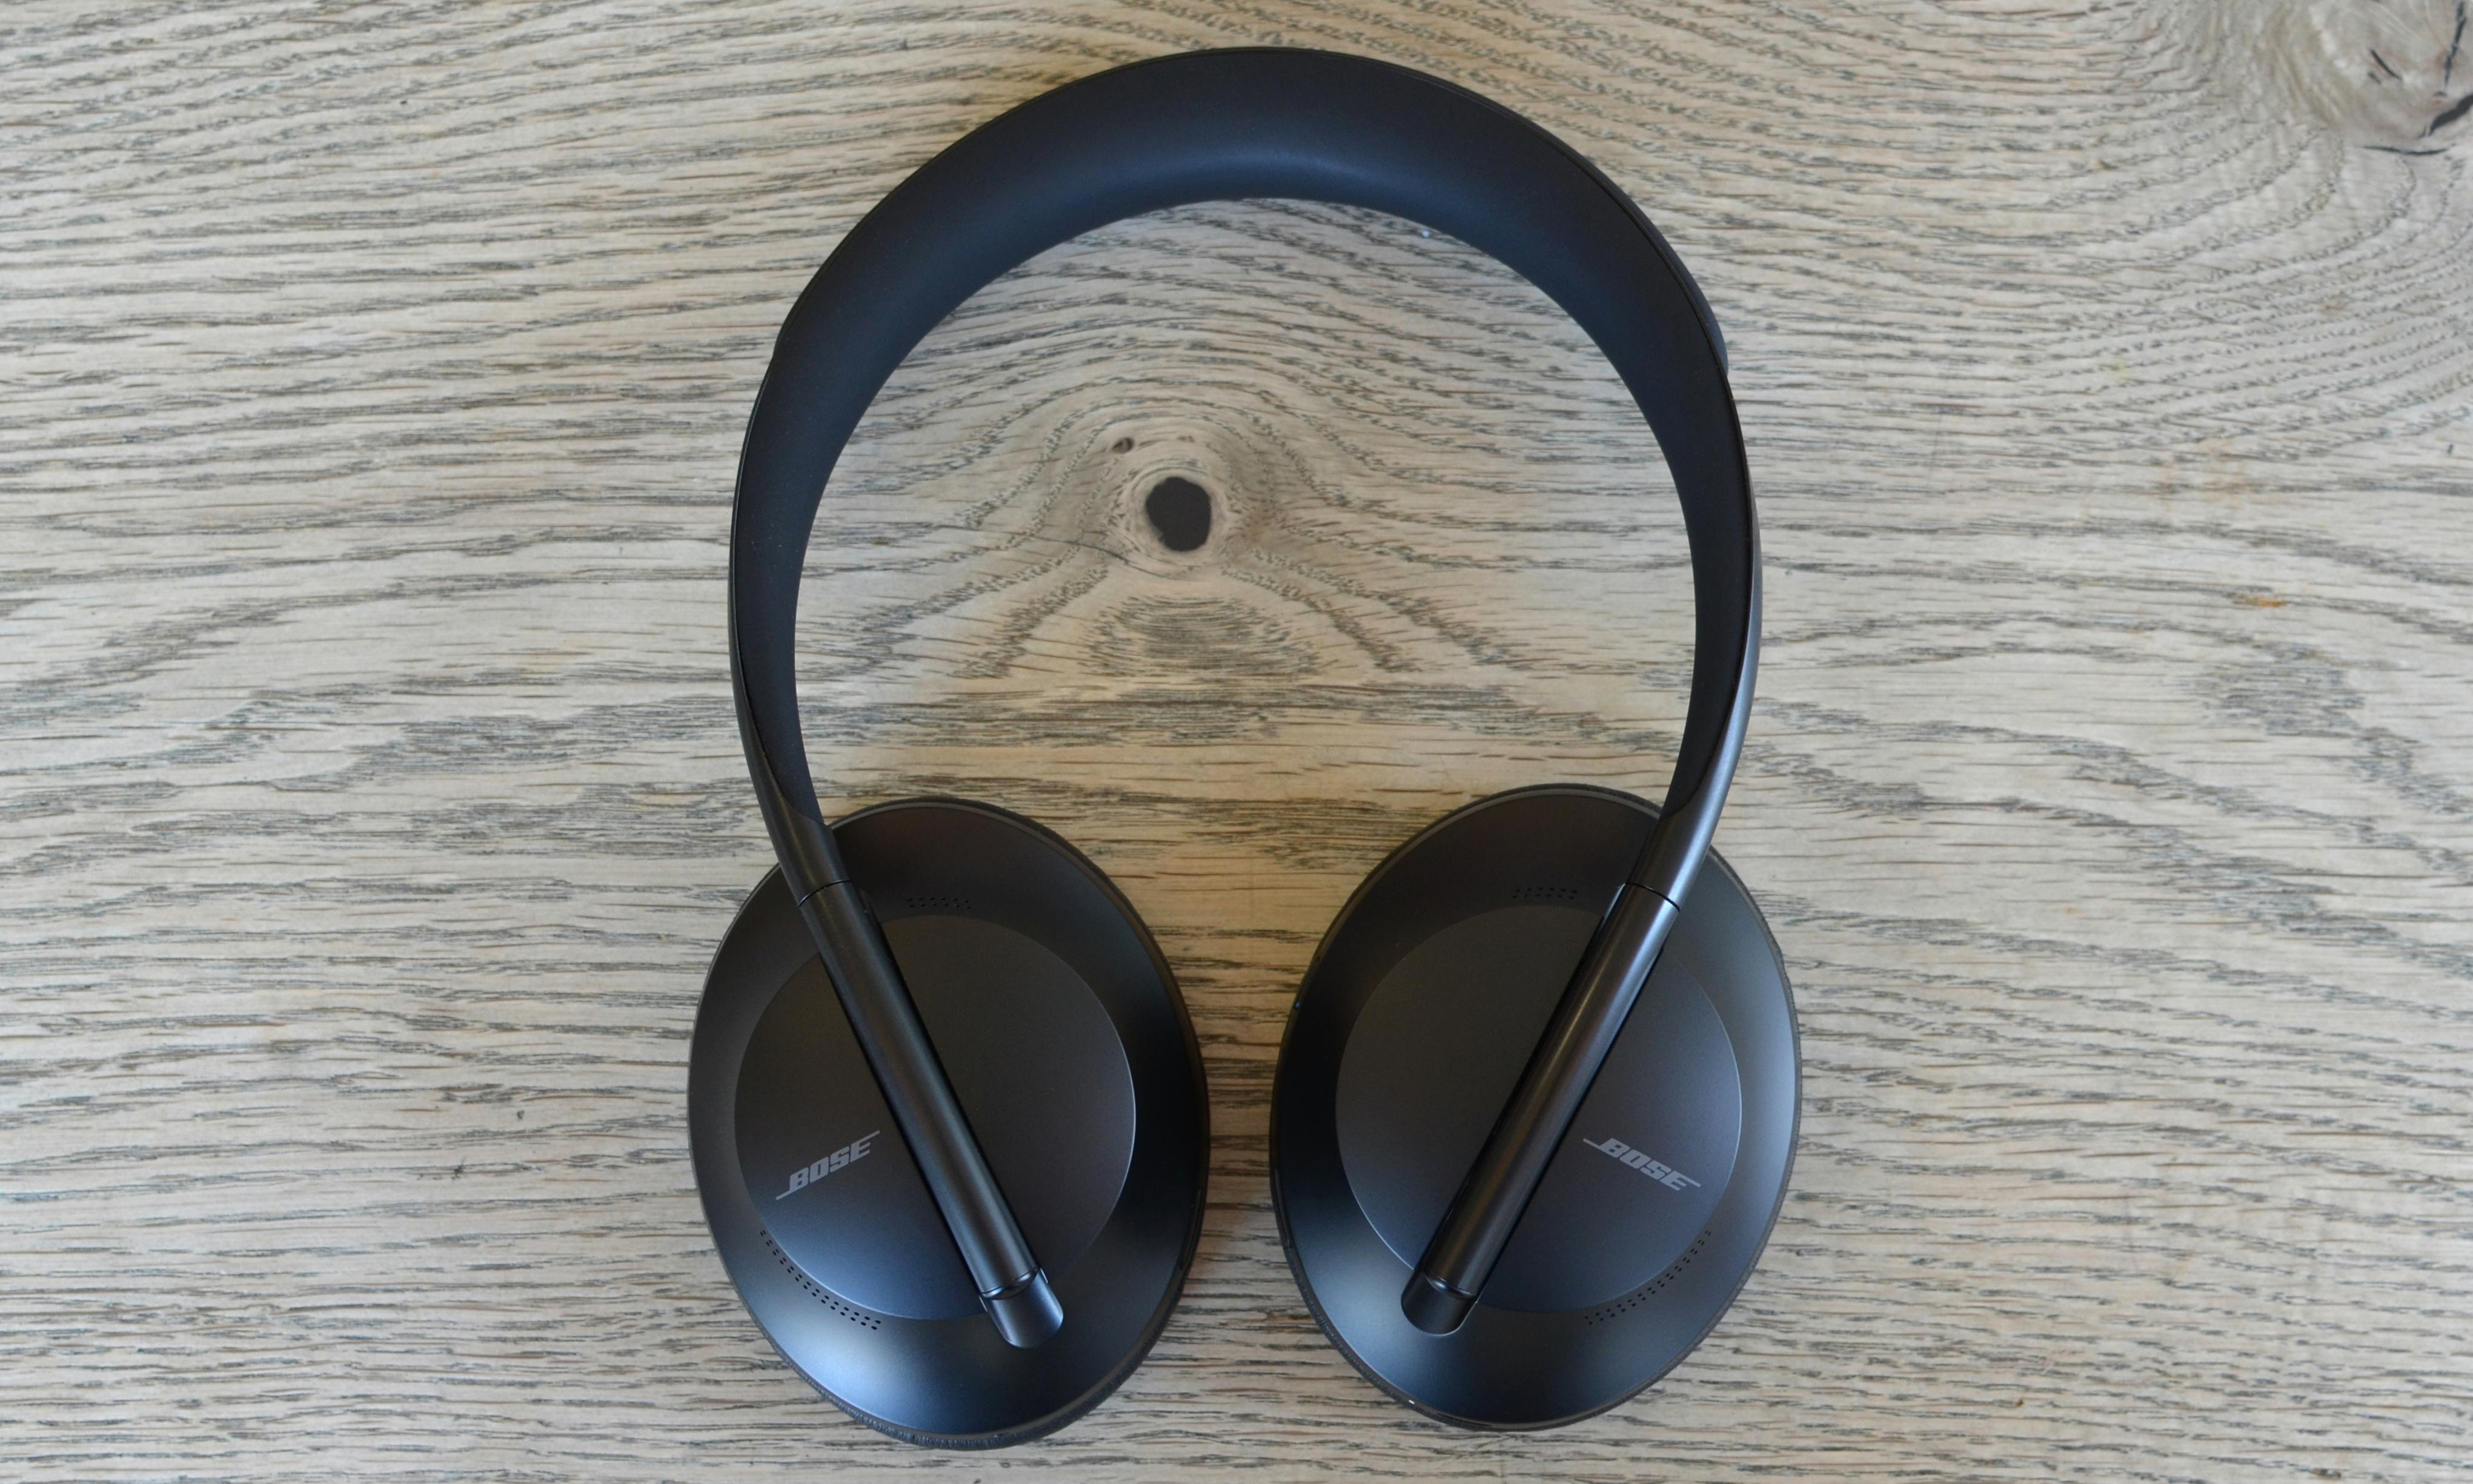 Bose Noise Cancelling Headphones 700 review: less business, more modern design